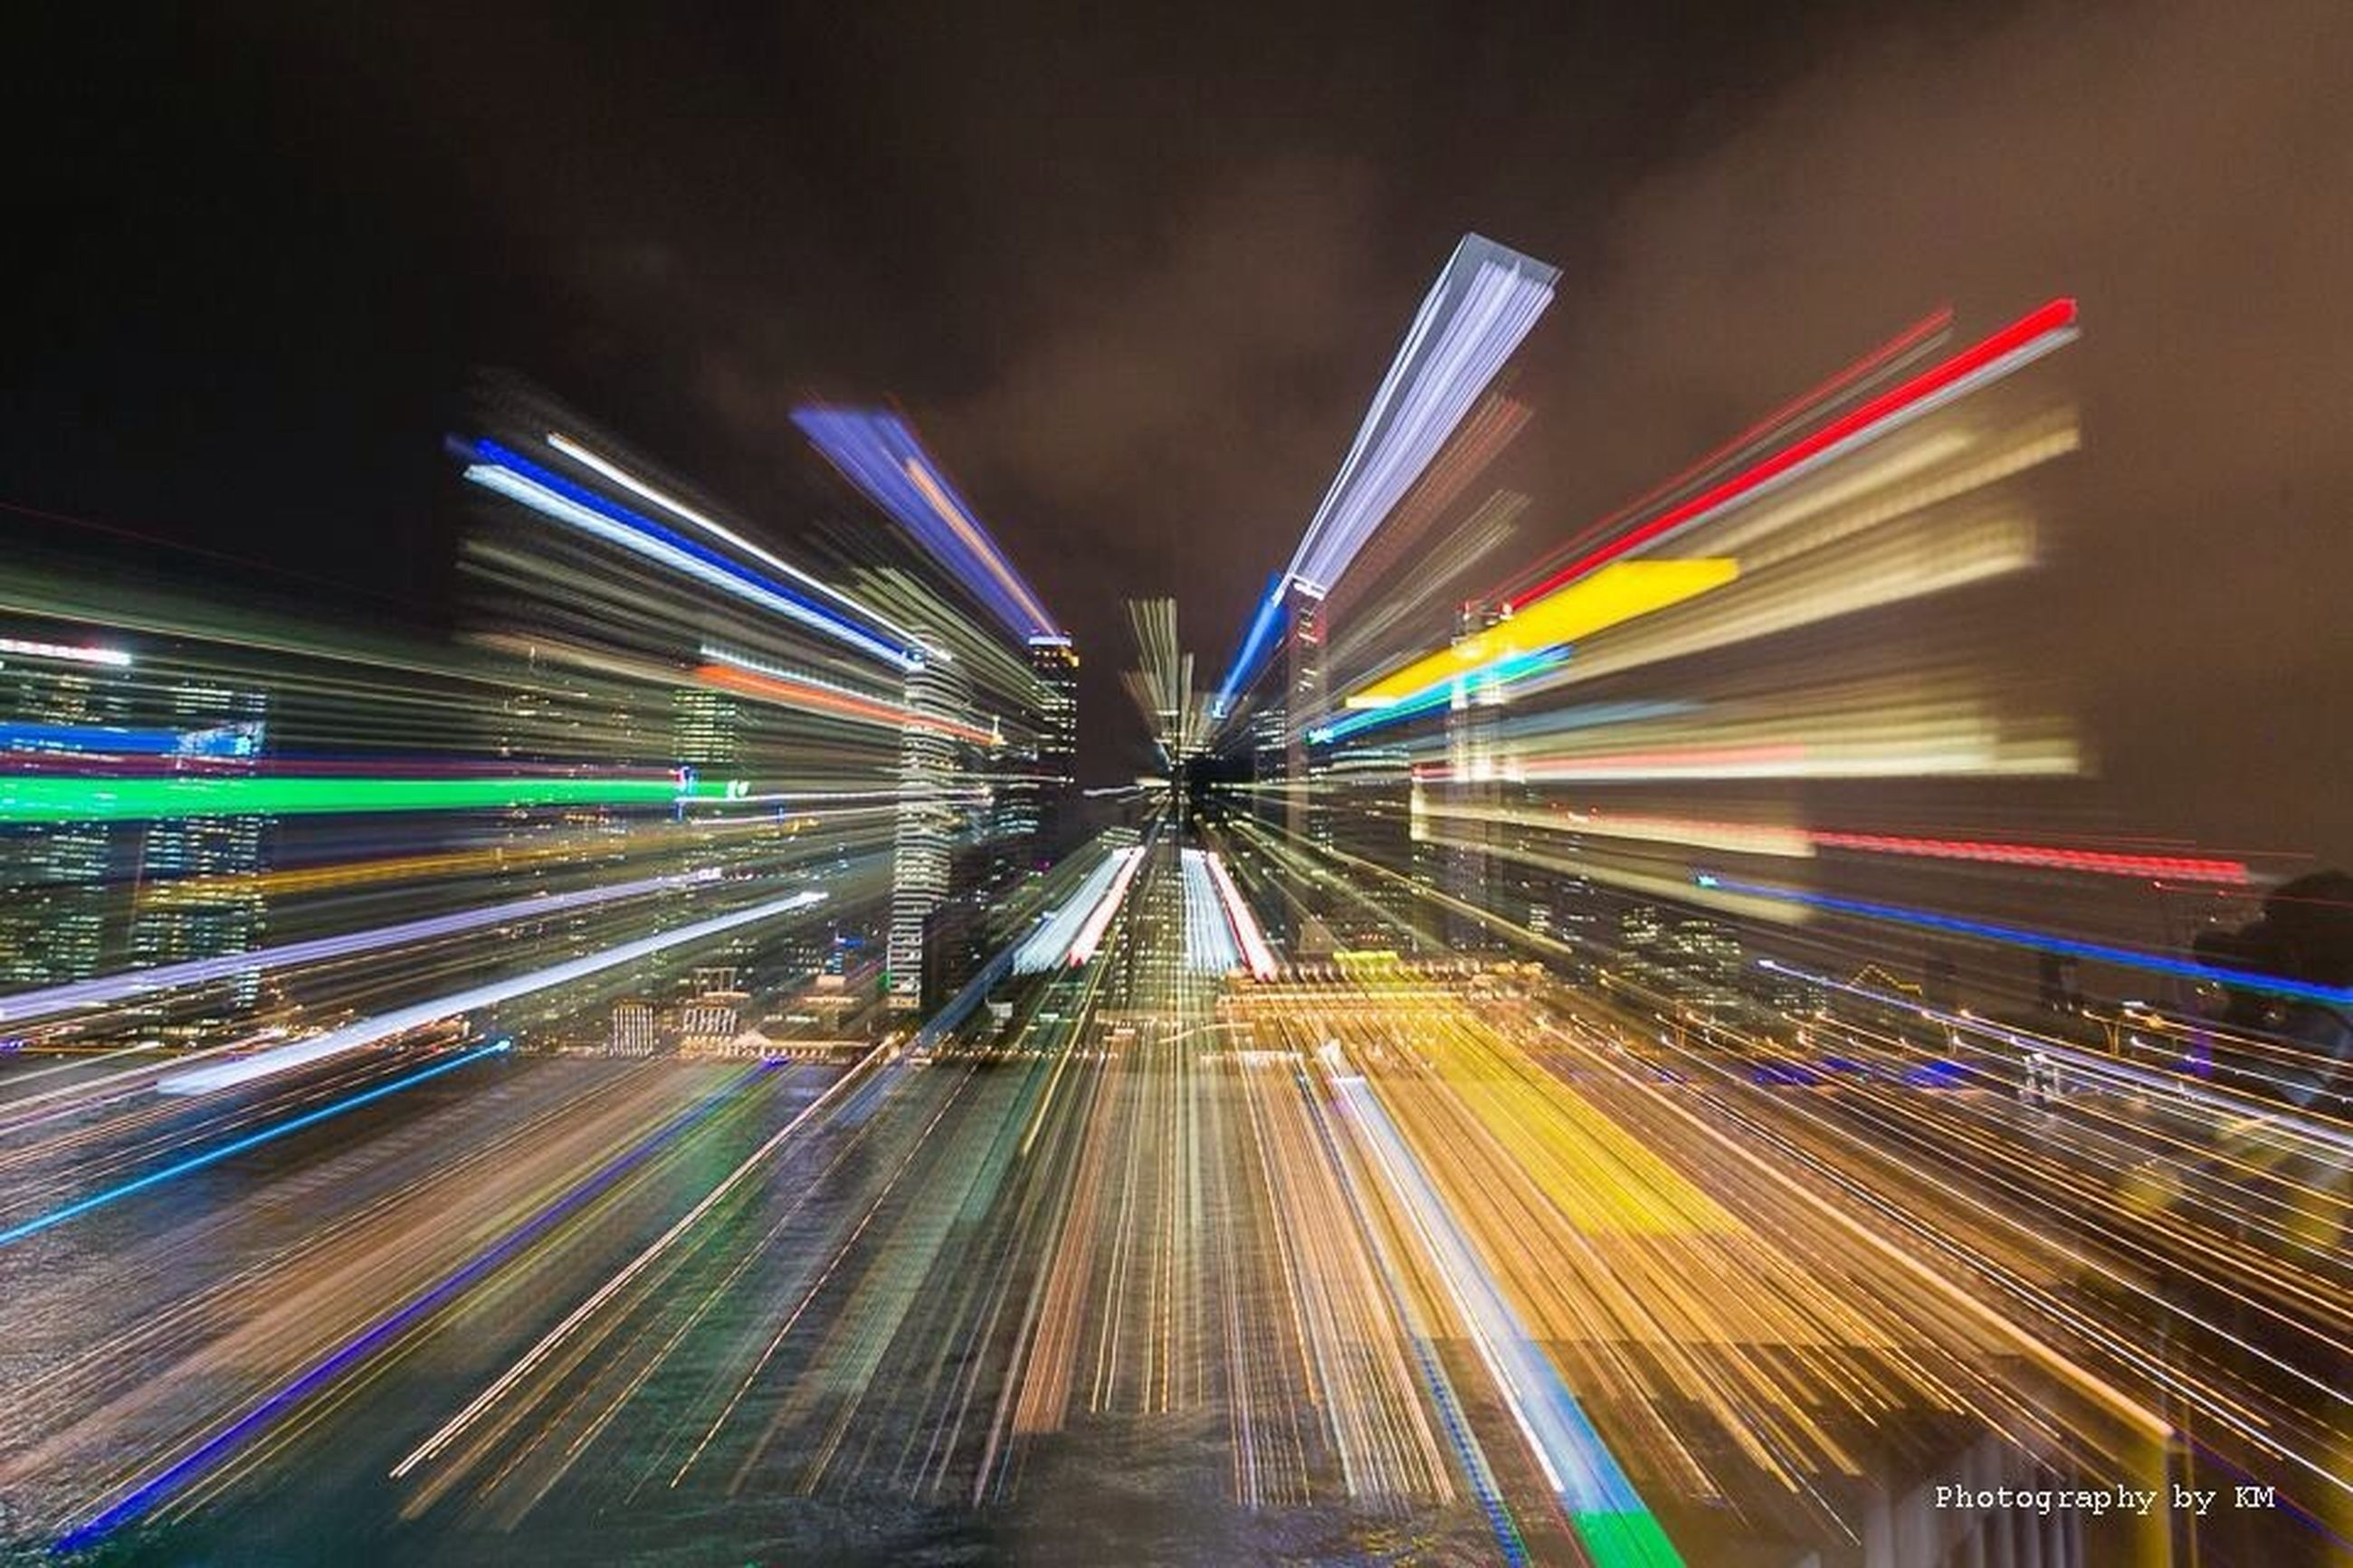 illuminated, night, long exposure, light trail, motion, transportation, blurred motion, speed, lighting equipment, architecture, multi colored, built structure, city, the way forward, diminishing perspective, city life, glowing, light - natural phenomenon, no people, road